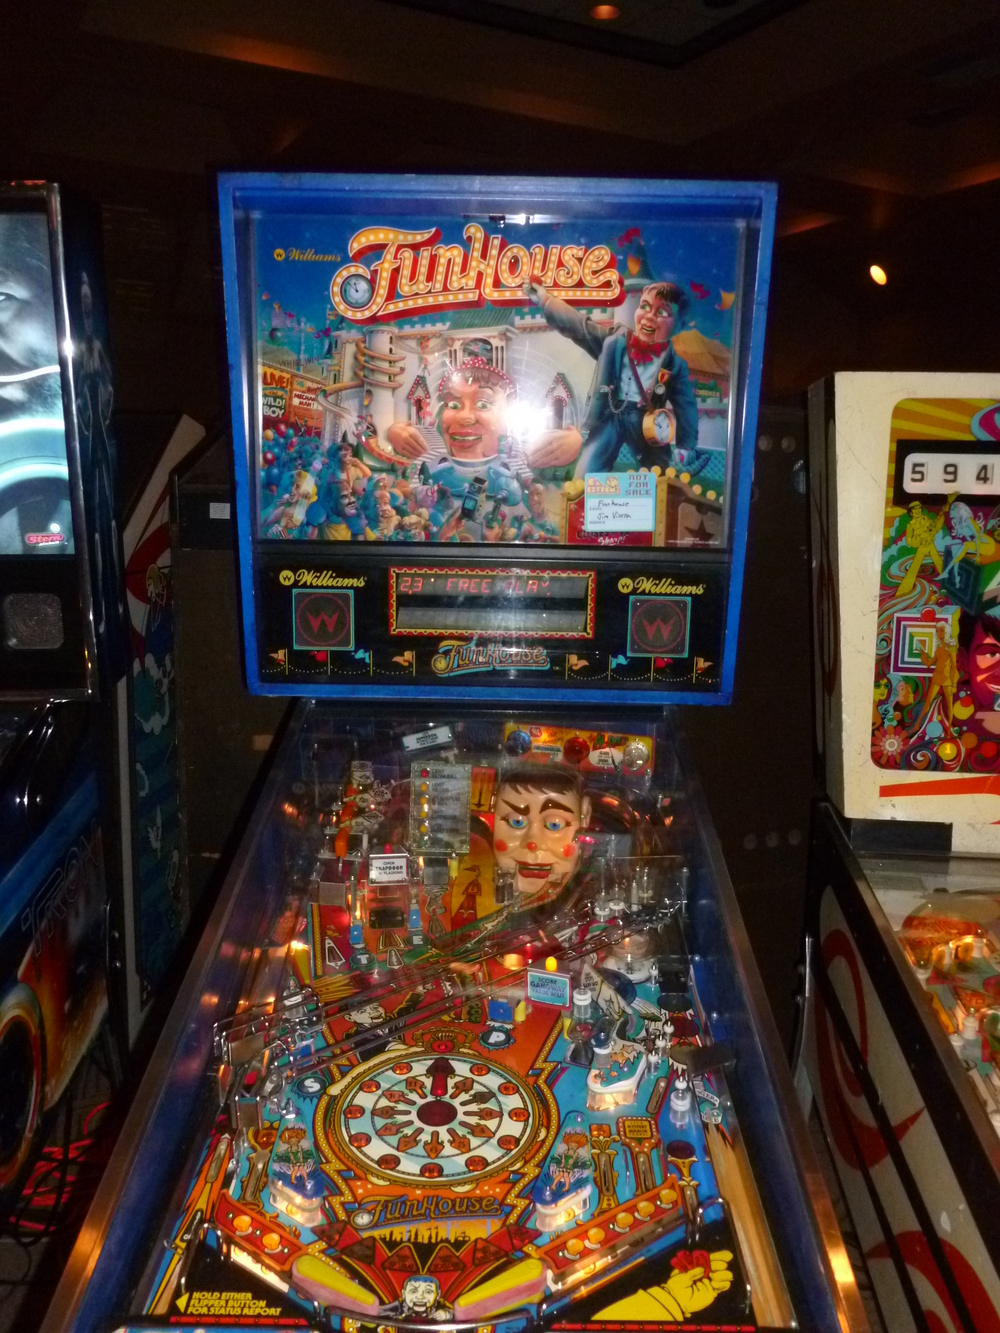 FunHouse, a classic Williams machine featuring the voice of Ed Boon of Mortal Kombat fame.JPG